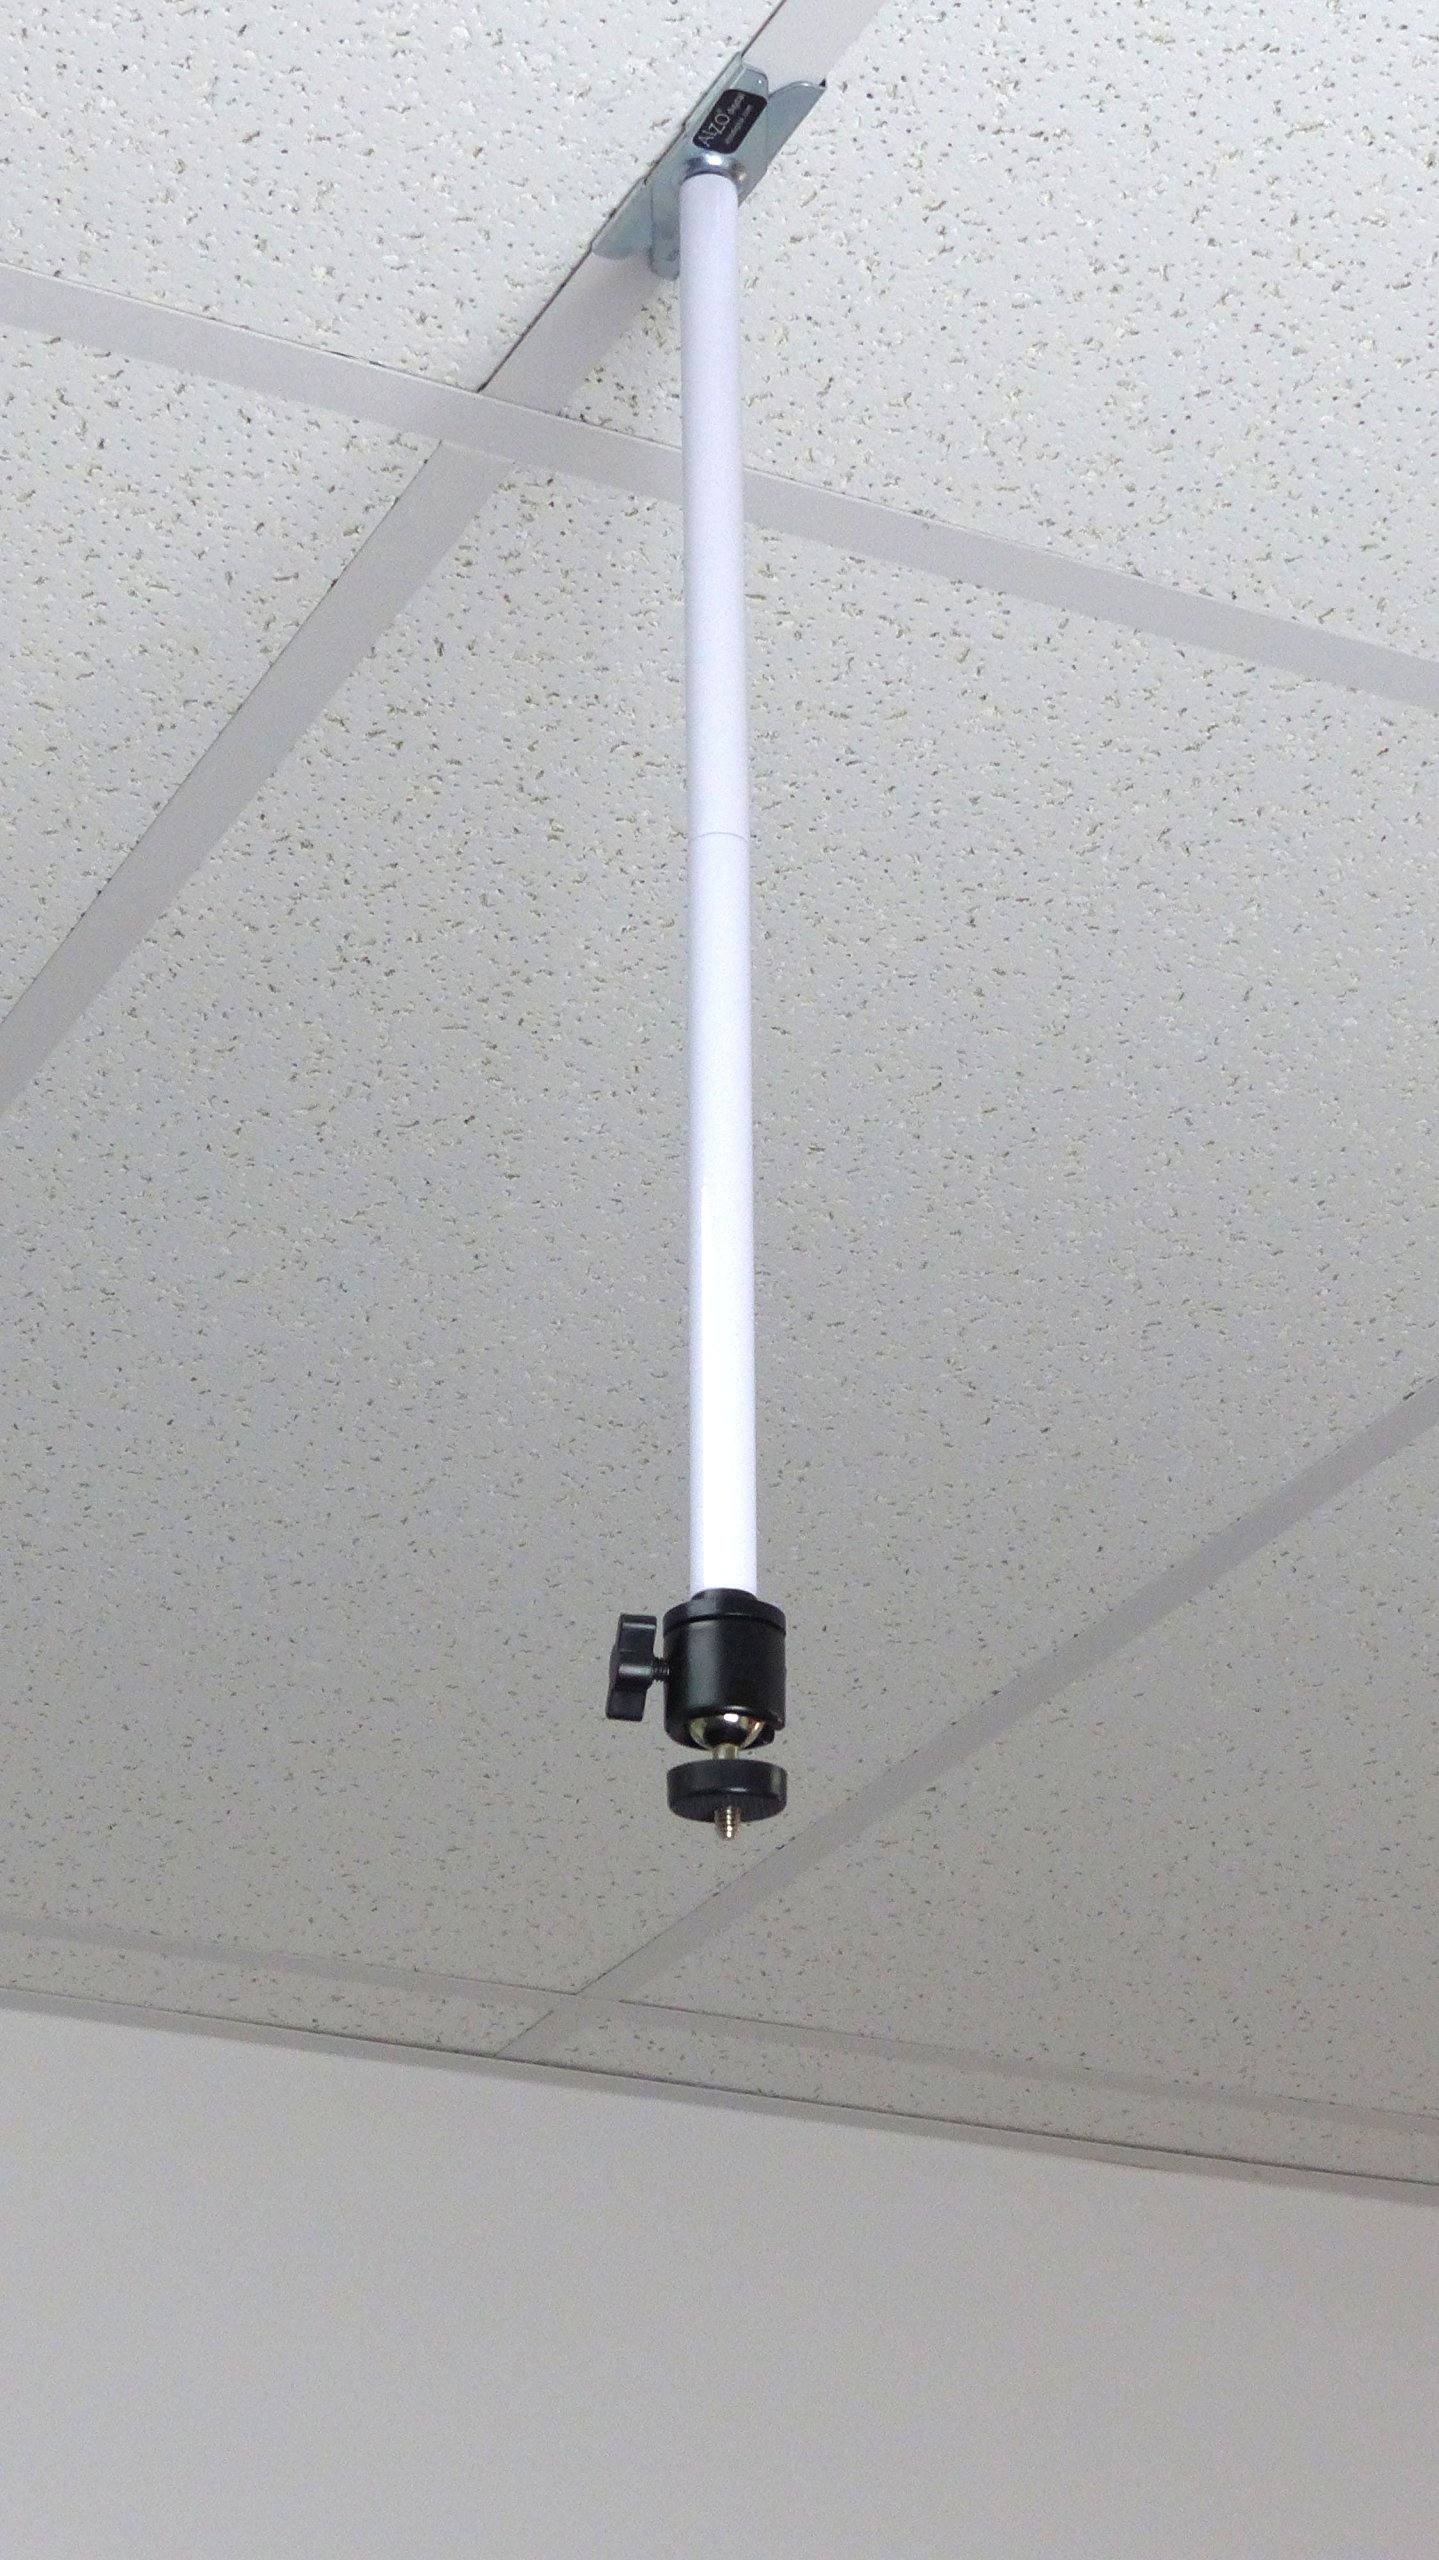 ALZO Suspended Drop Ceiling Video Pico Mini Projector Mount Bracket by ALZO Digital